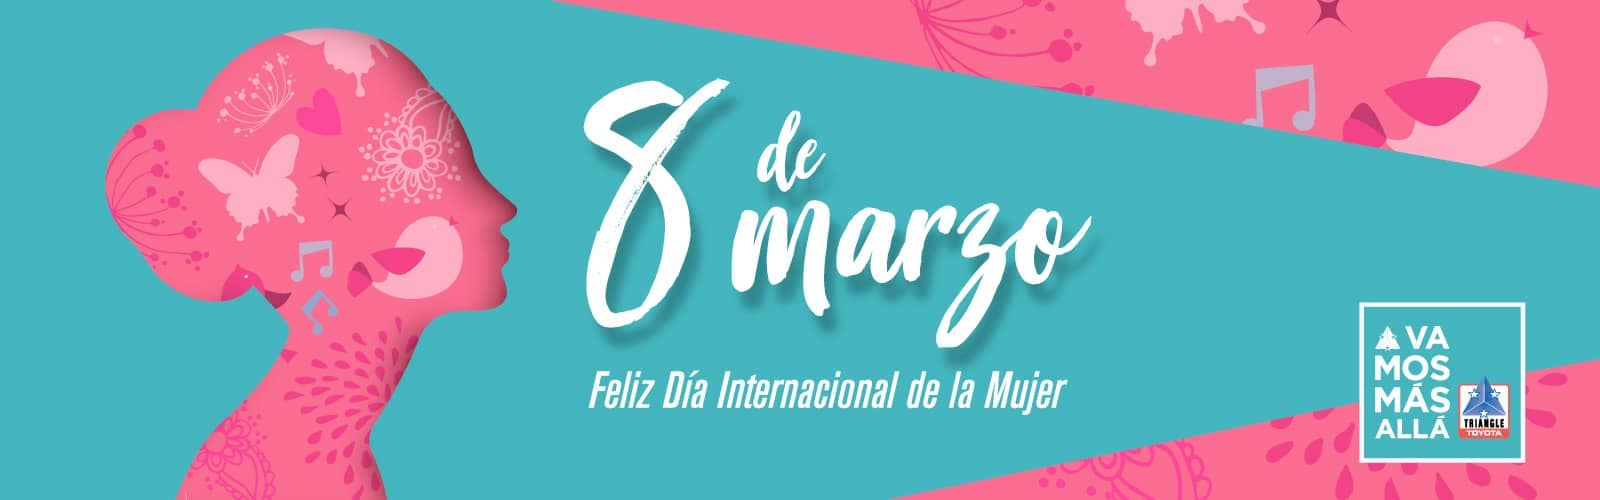 Spanish Banner Image - T01151520-Mujer-1600x500-Marzo